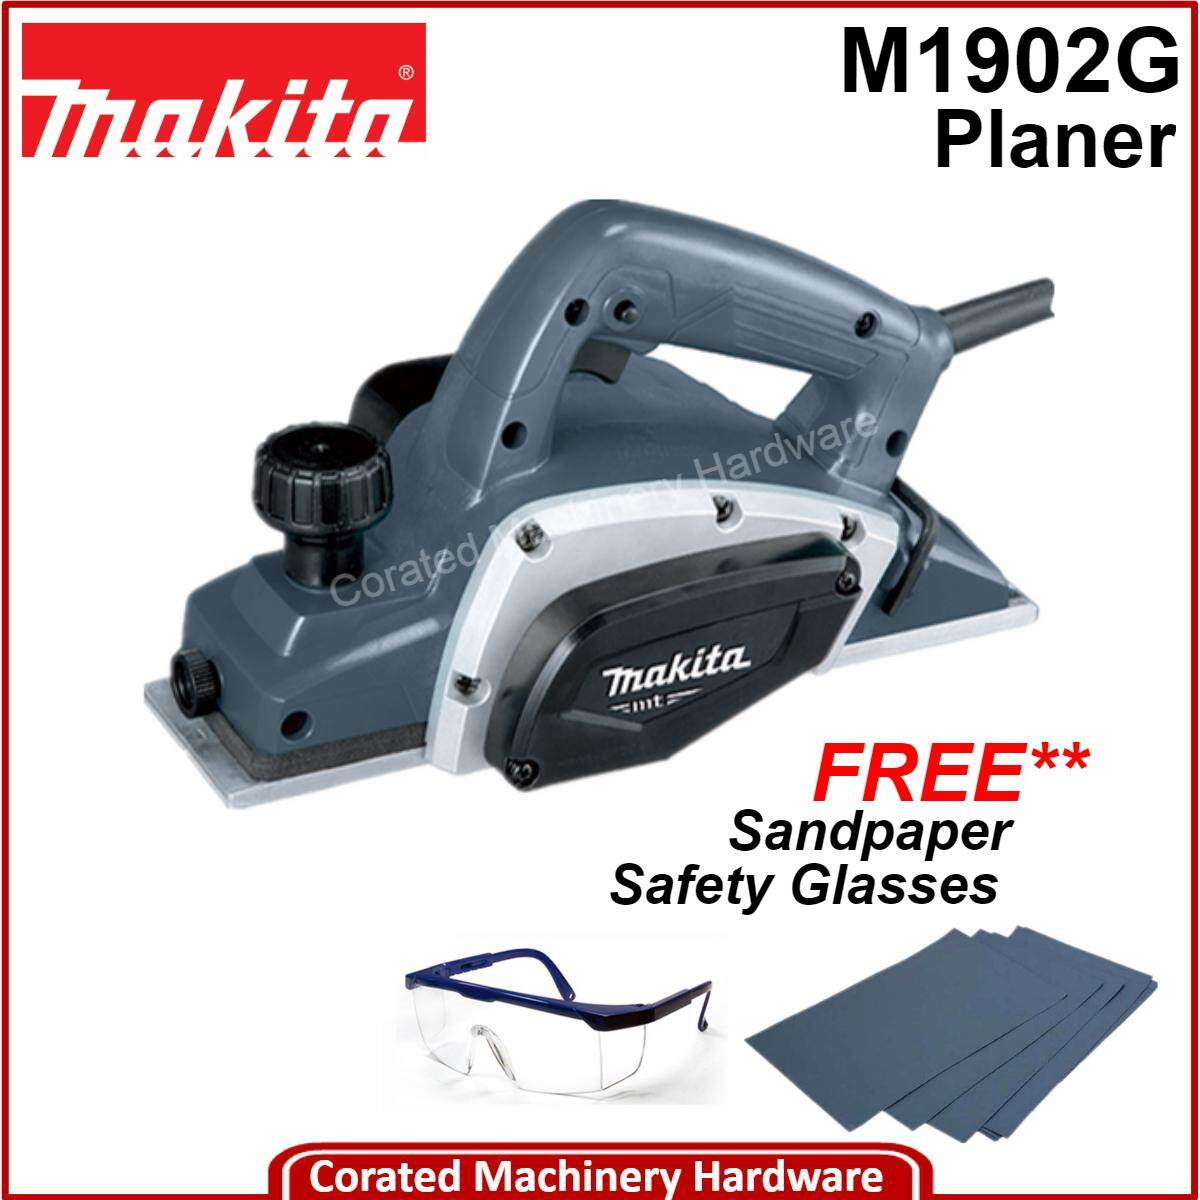 [CORATED] Makita M1902G 82MM (3-1/4 ) Planer ( 12 Month Warranty)